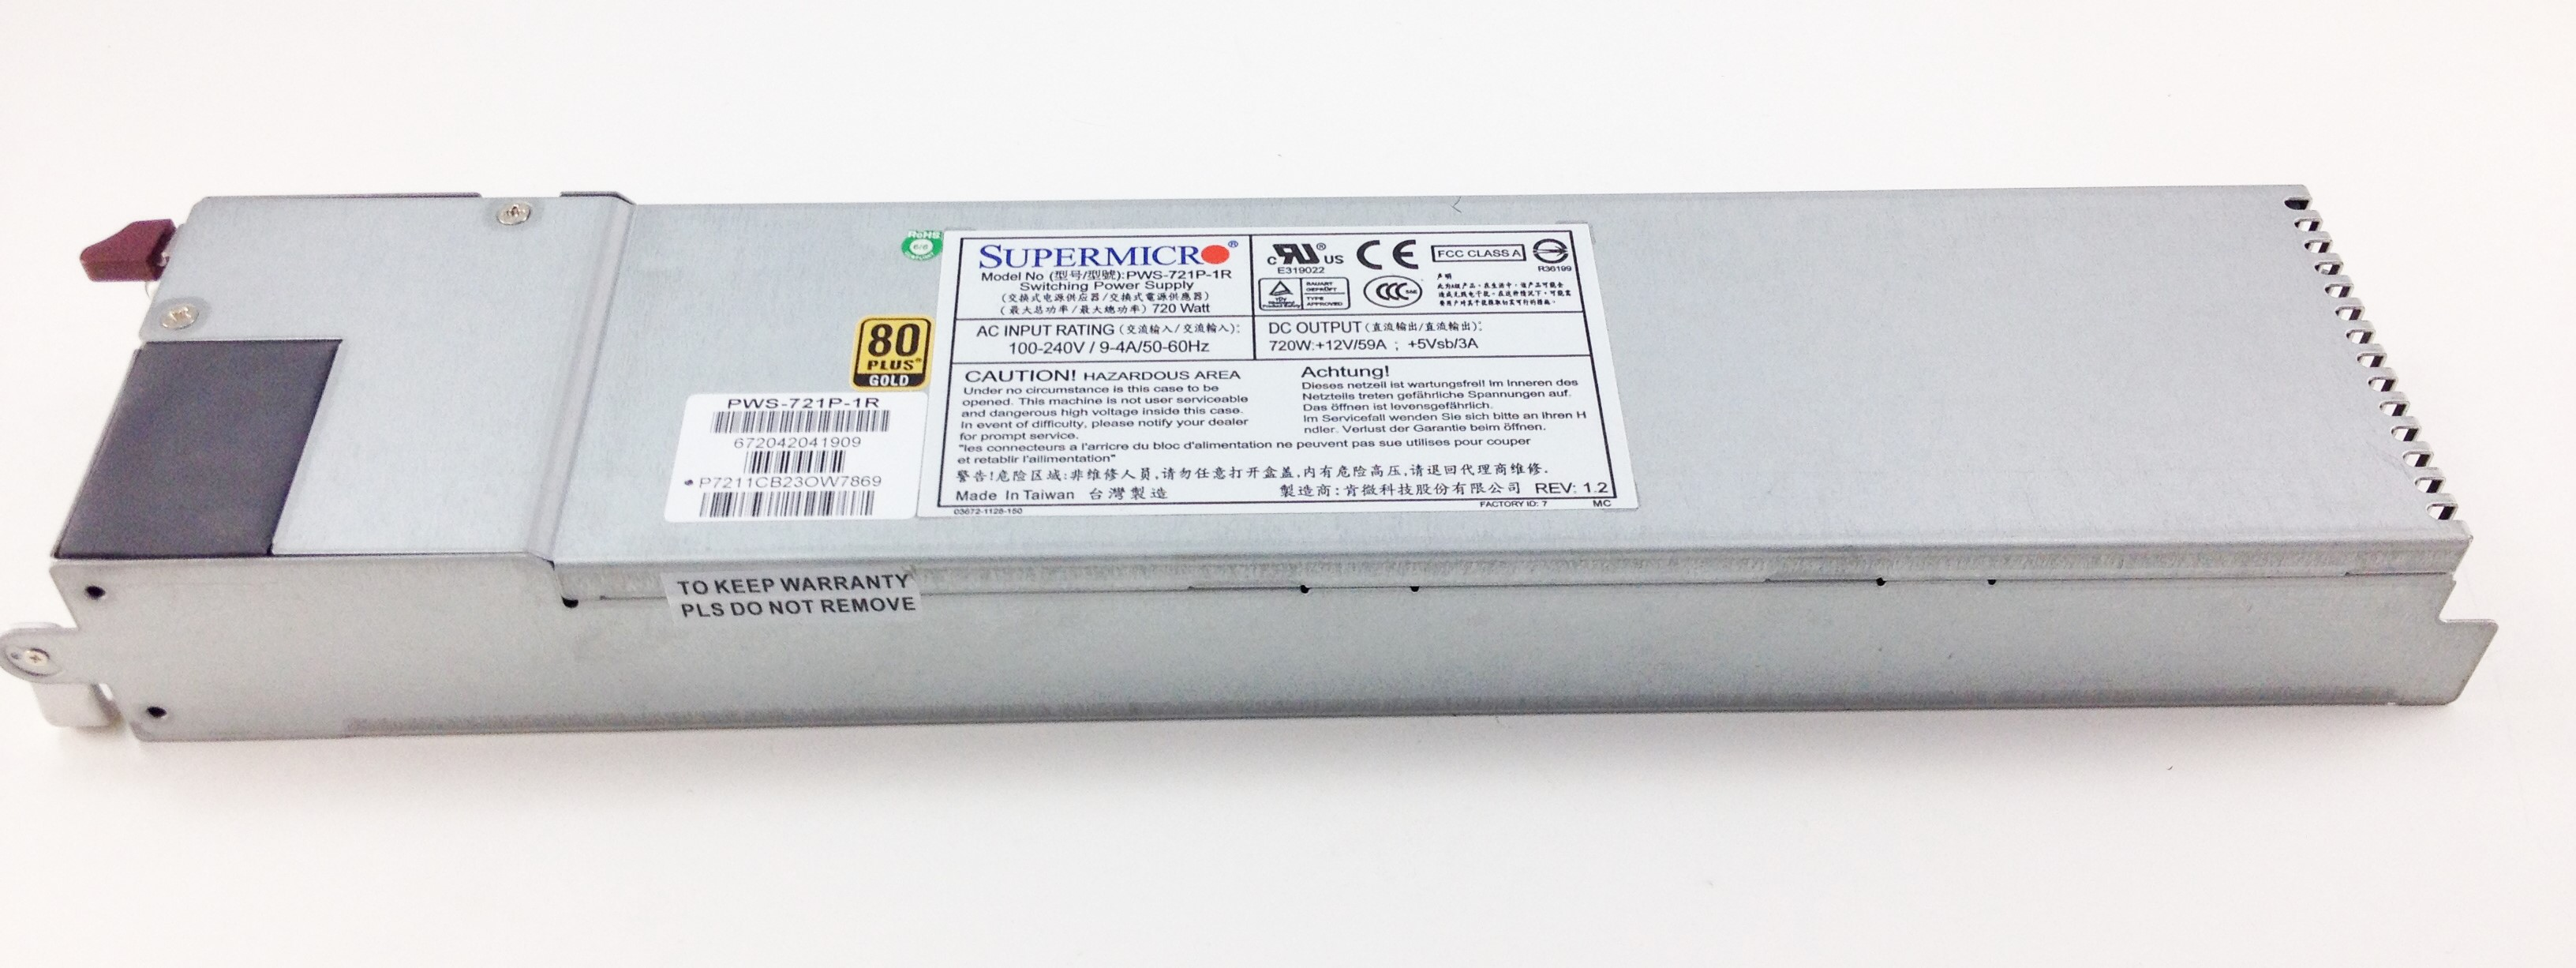 Supermicro 720 Watt Switching Power Supply (PWS-721P-1R)